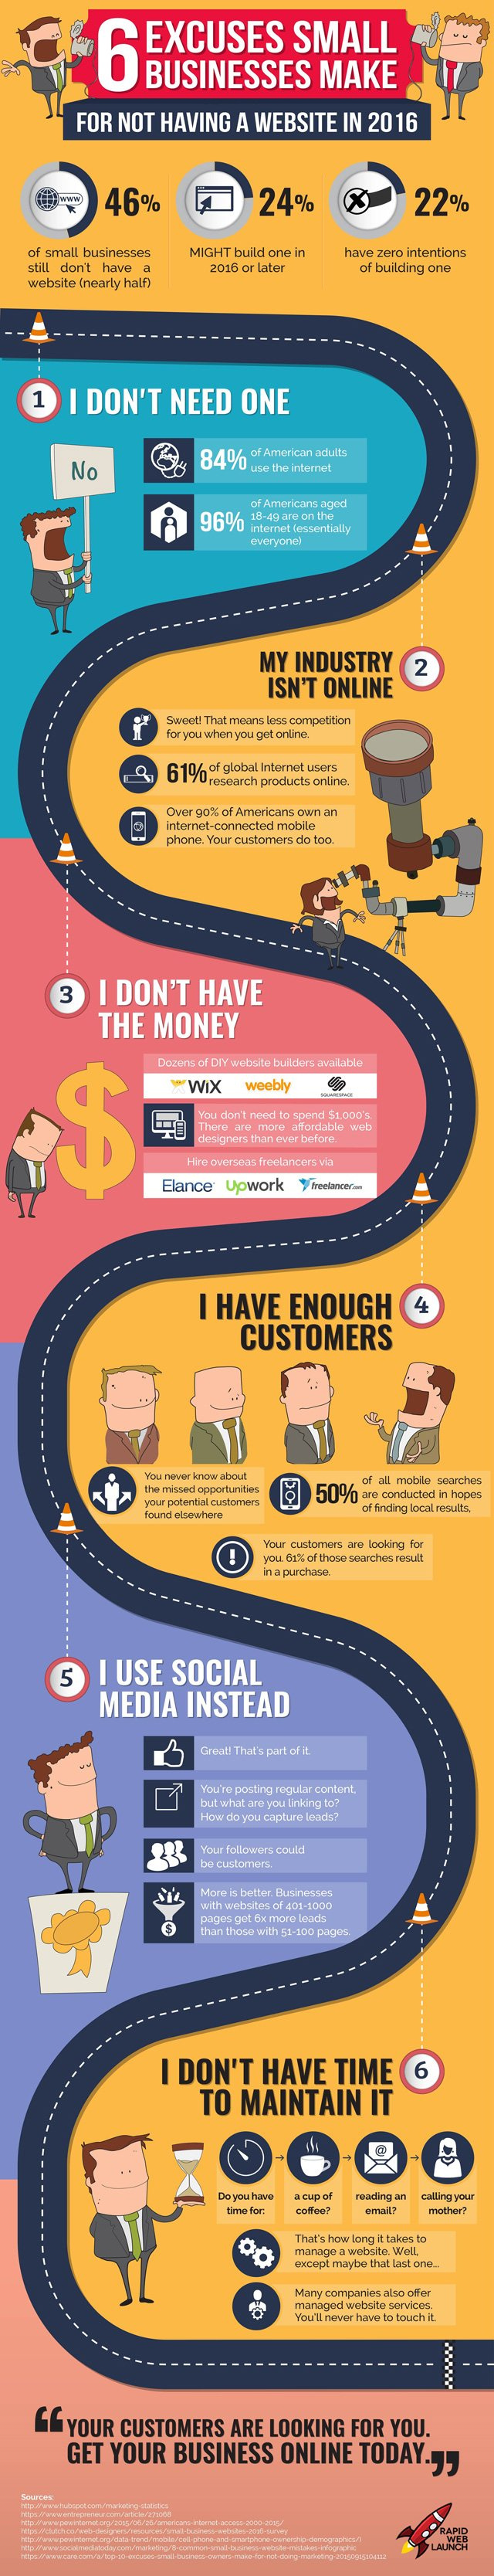 0595-01-excuses-for-not-having-a-website-infographic